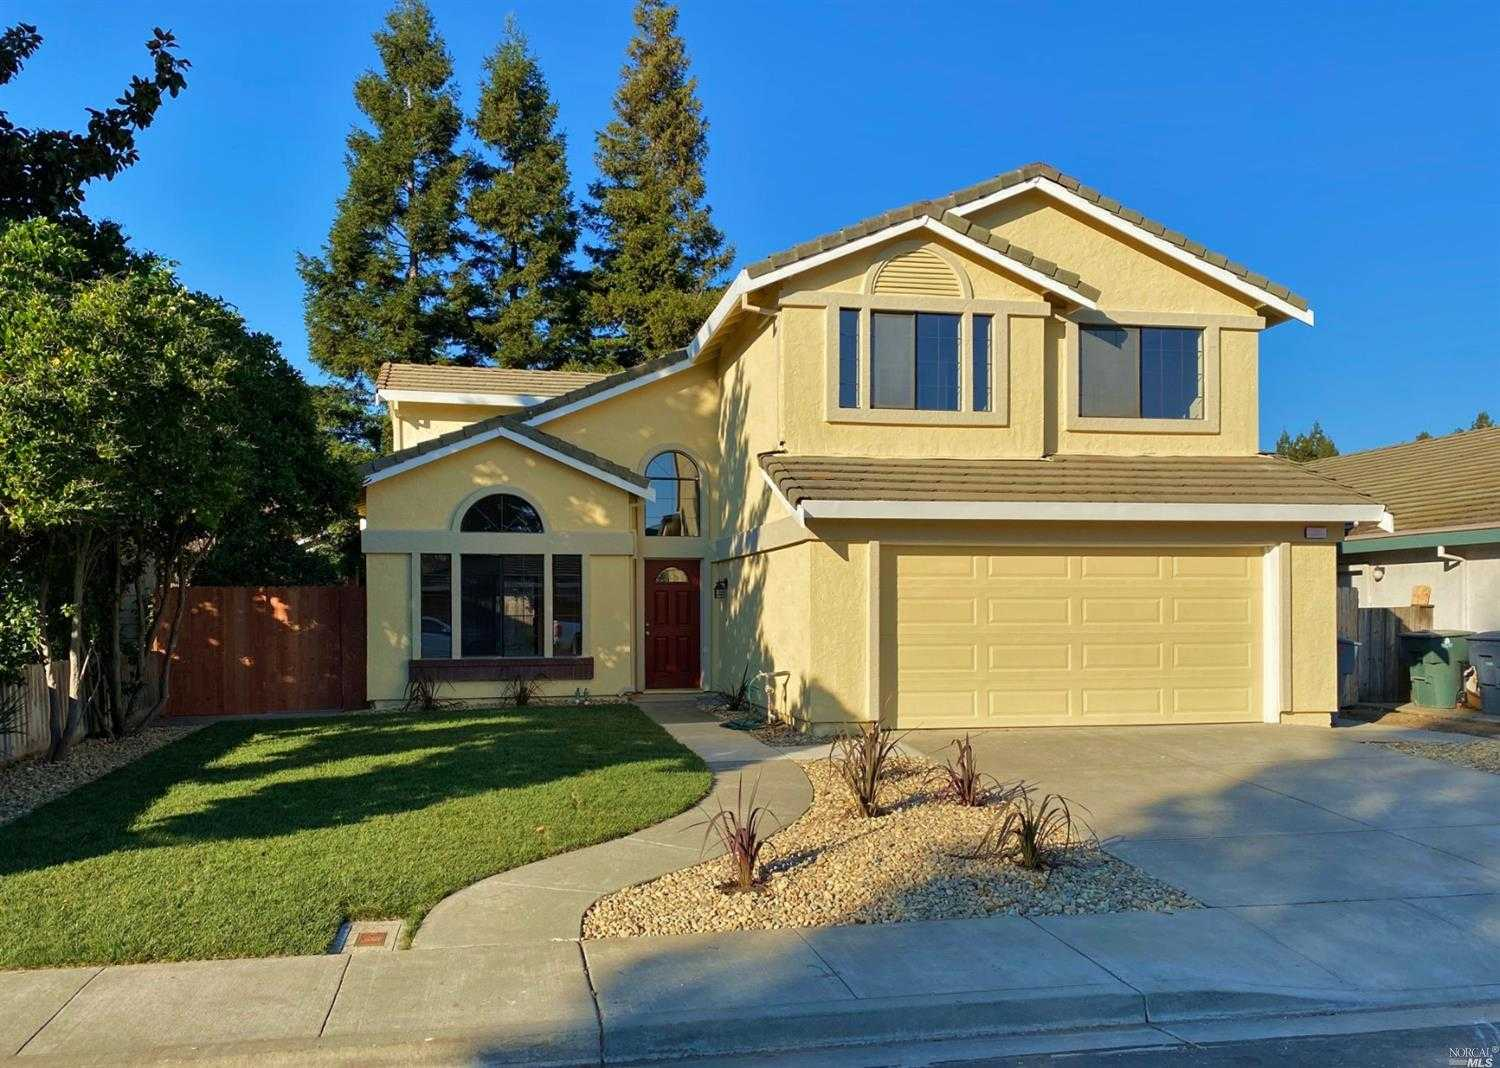 $530,000 - 4Br/3Ba -  for Sale in Nut Tree Landing, Vacaville